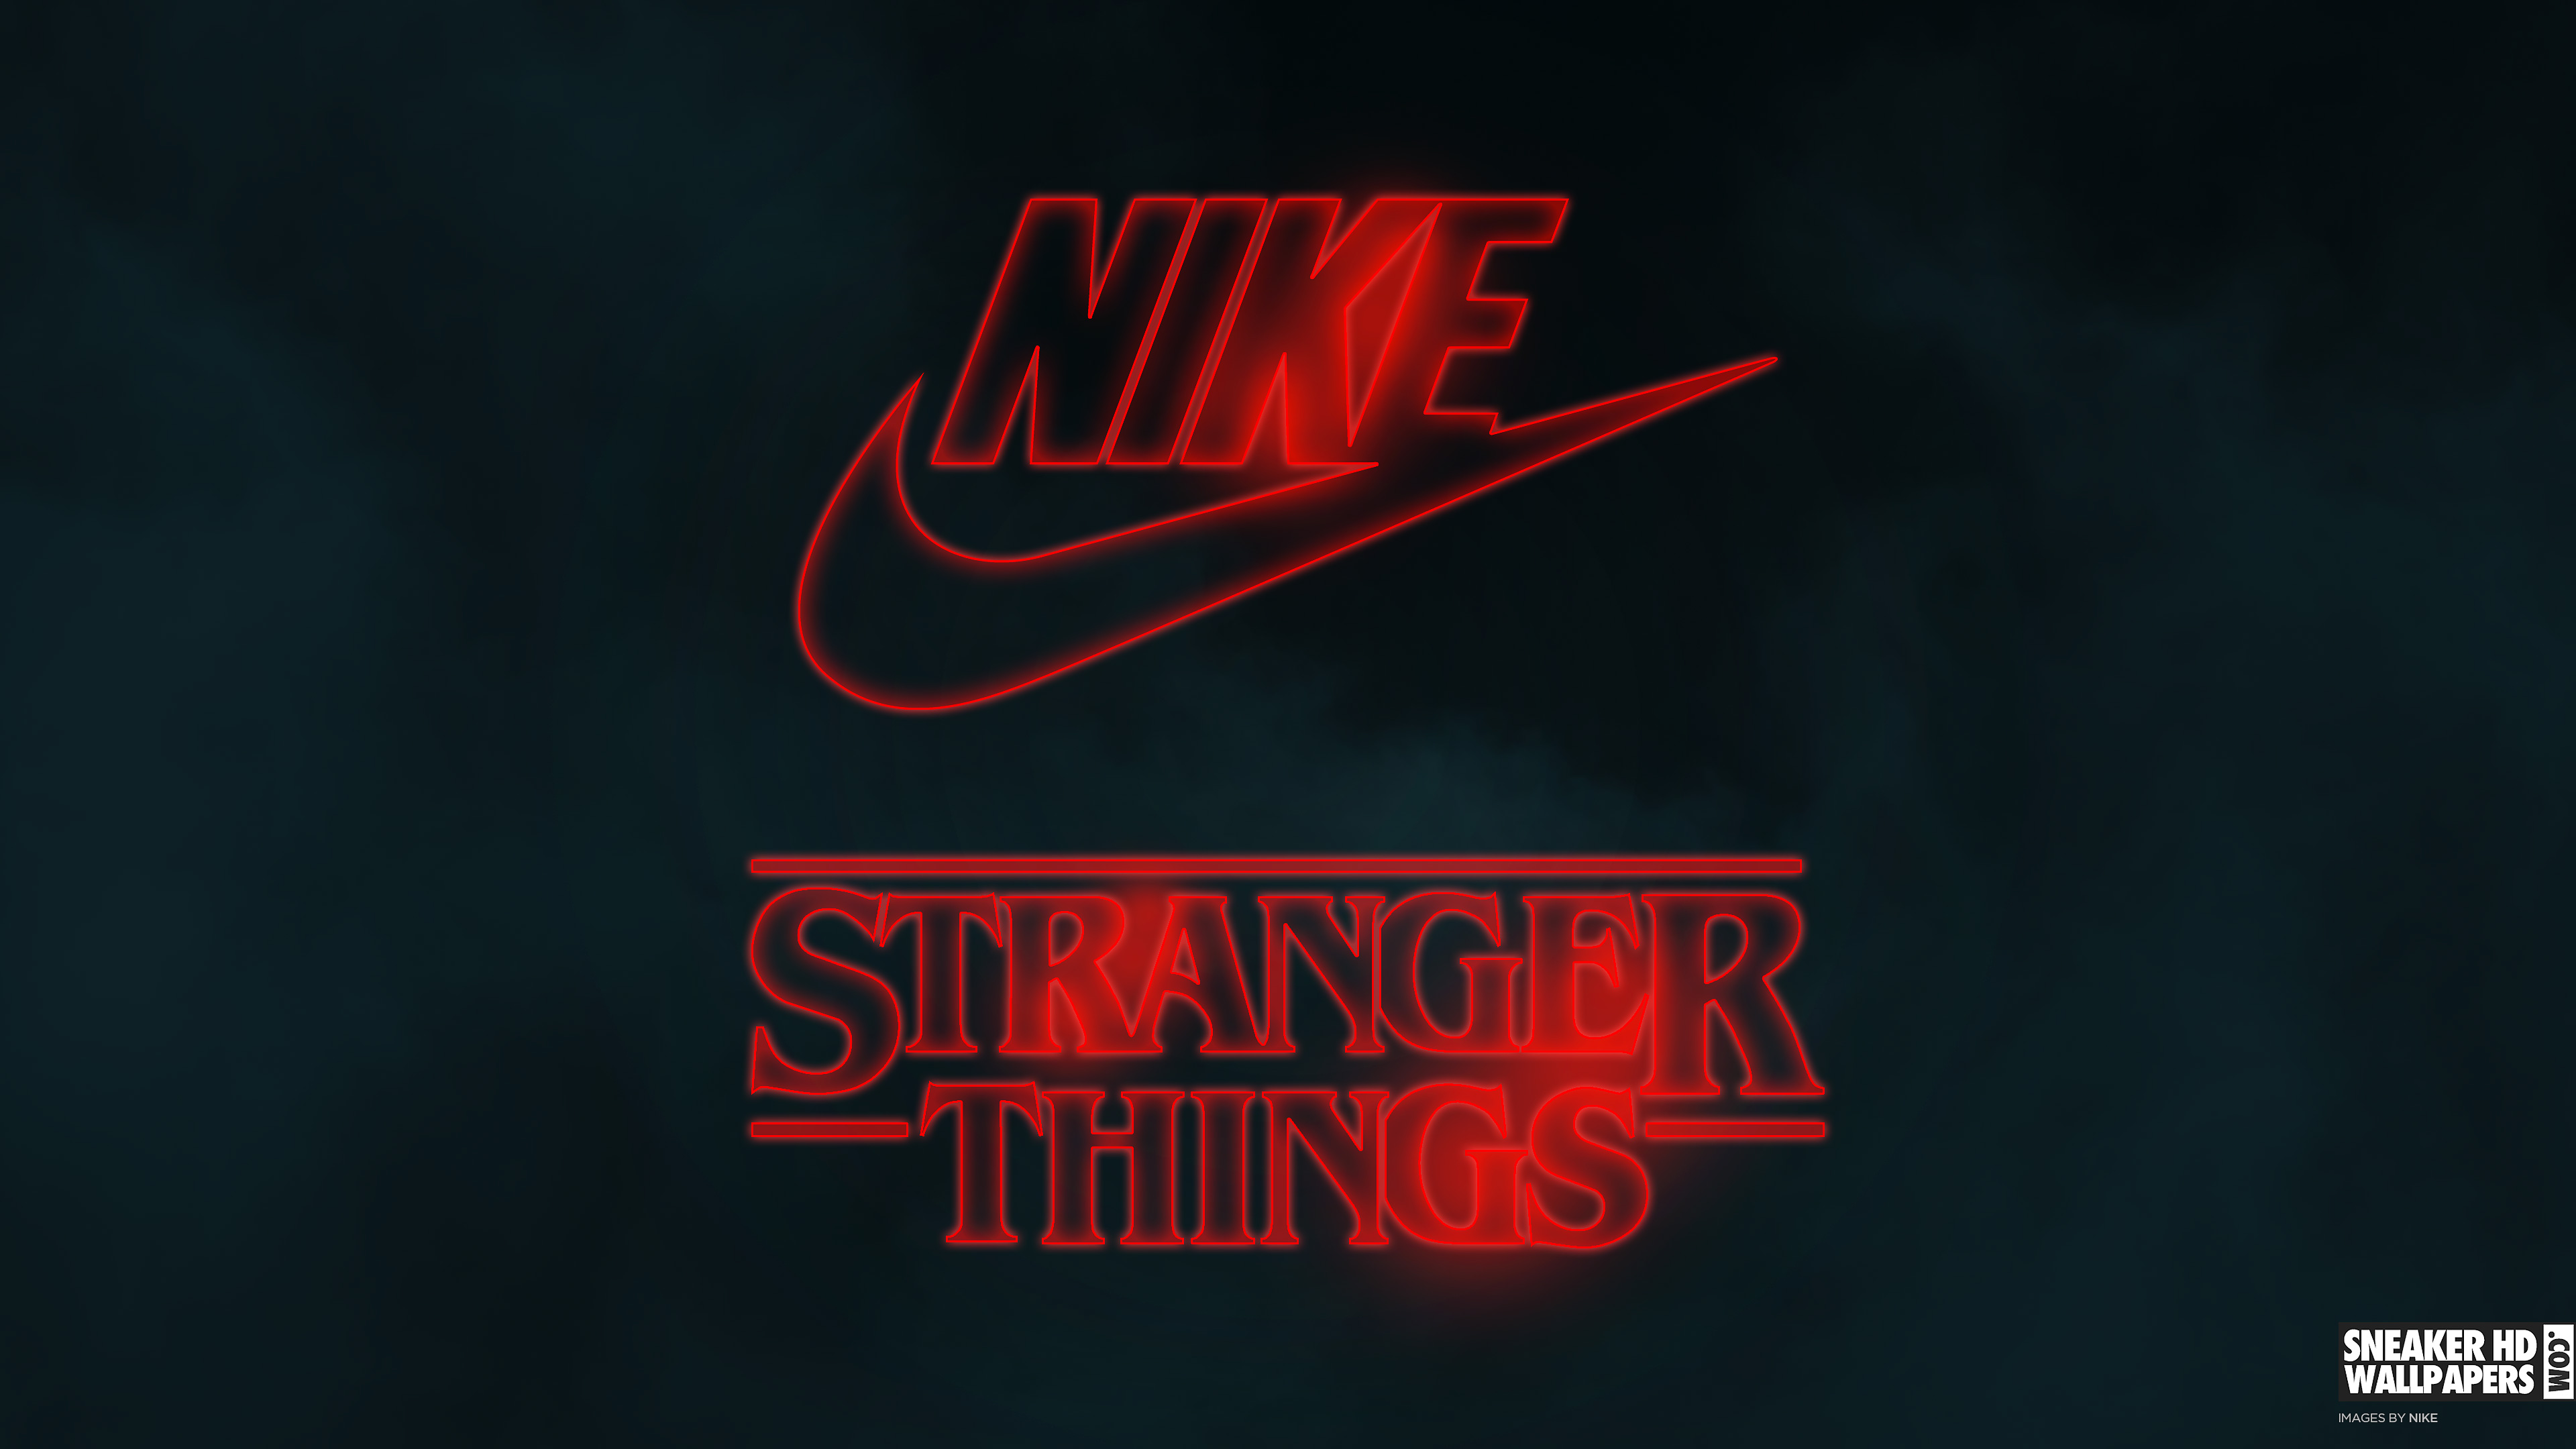 Sneakerhdwallpapers Com Your Favorite Sneakers In 4k Retina Mobile And Hd Wallpaper Resolutions Blog Archive Nike X Stranger Things Wallpaper Sneakerhdwallpapers Com Your Favorite Sneakers In 4k Retina Mobile And